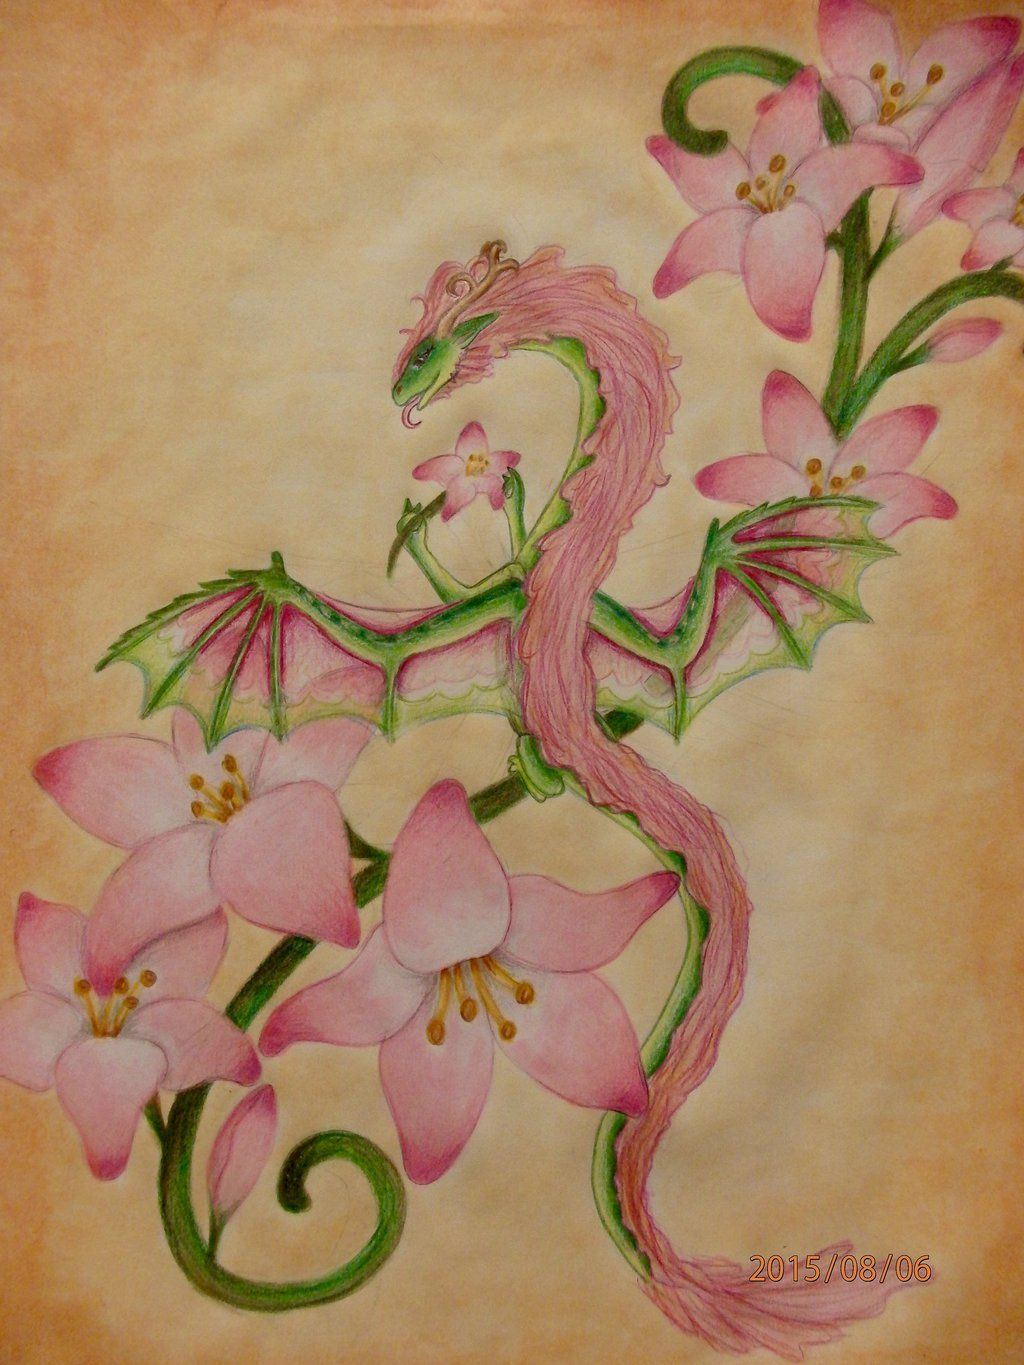 Dragon Tattoo With Flowers: Flower Dragon - Google Search